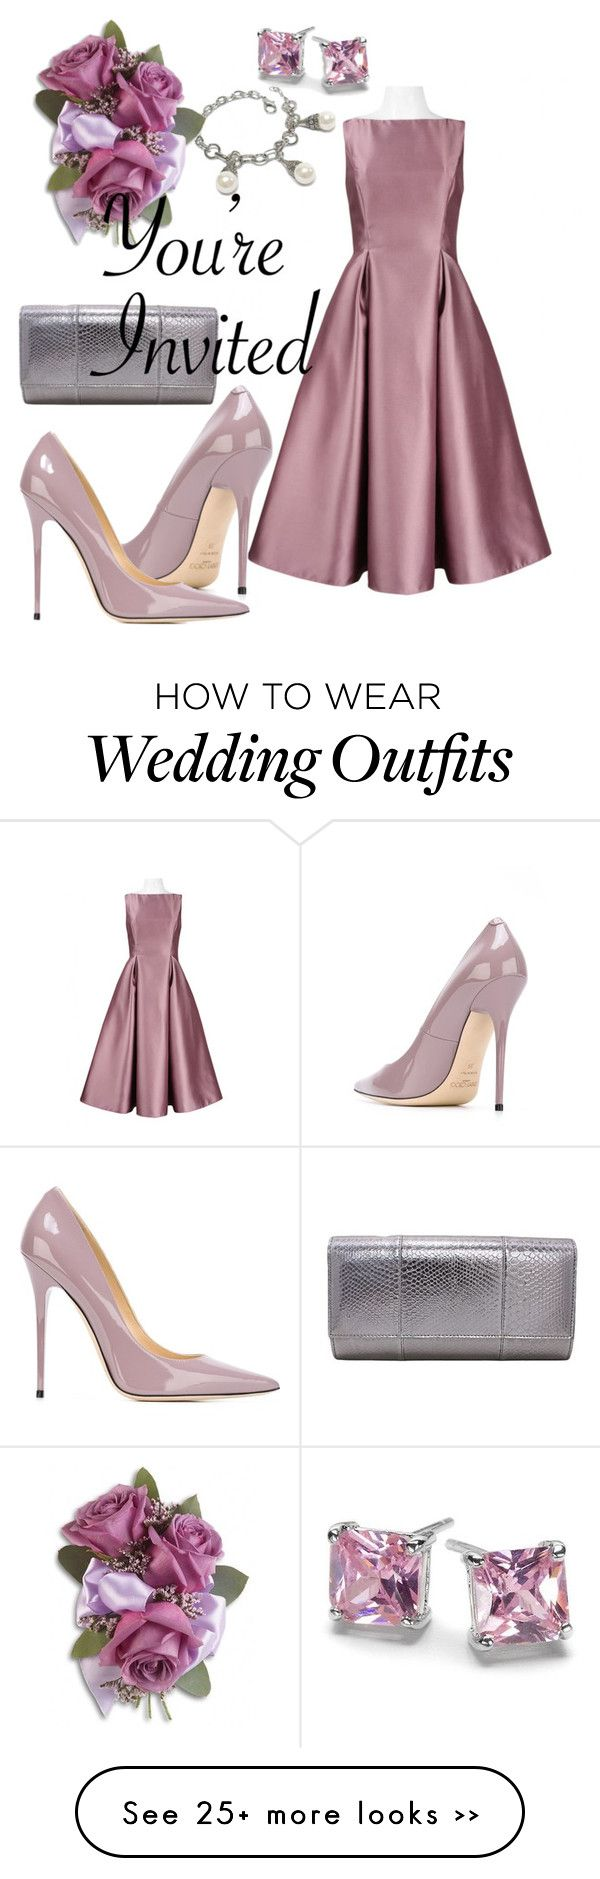 Spring Dresses Southern Wedding Guest Polyvore